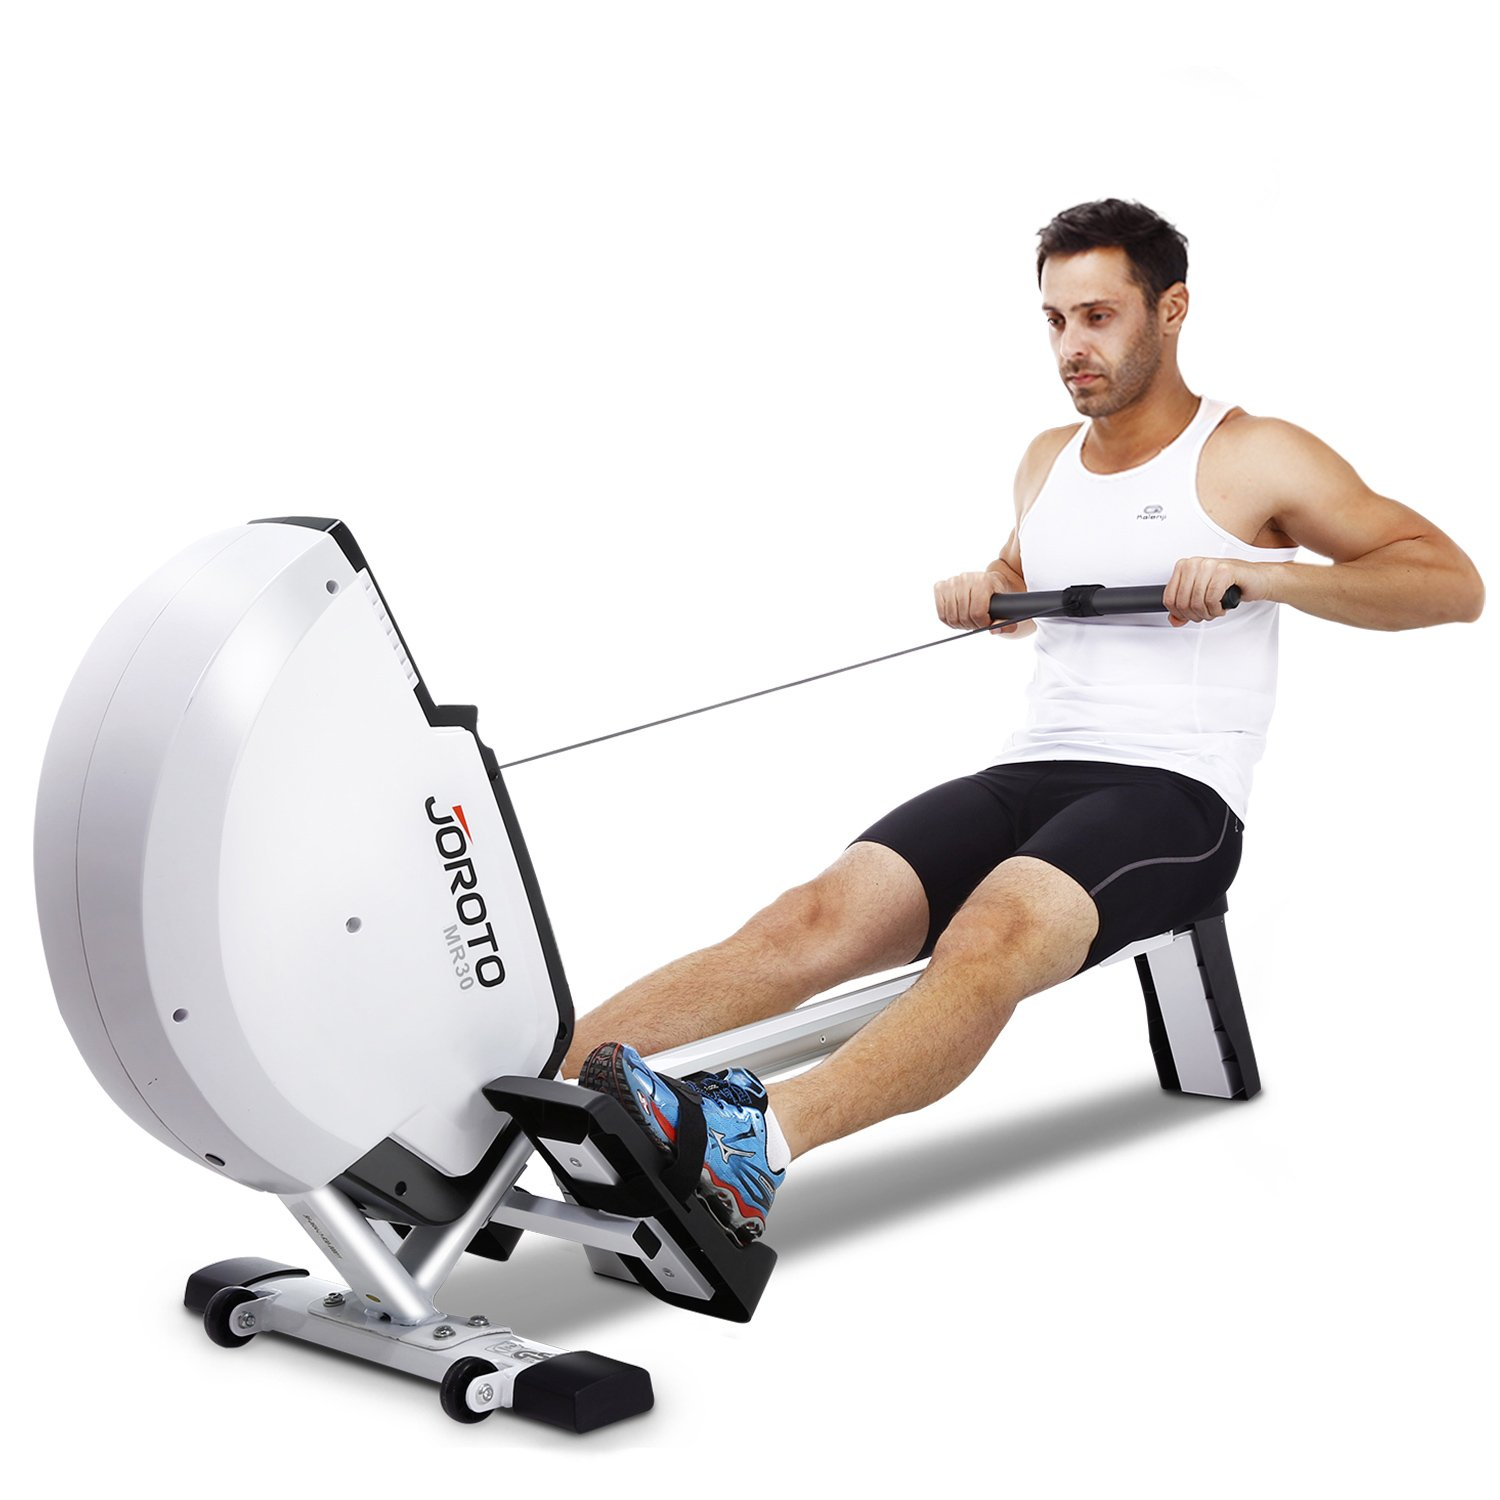 JOROTO MR30 Health & Fitness Magnetic Folding Rowing Machine